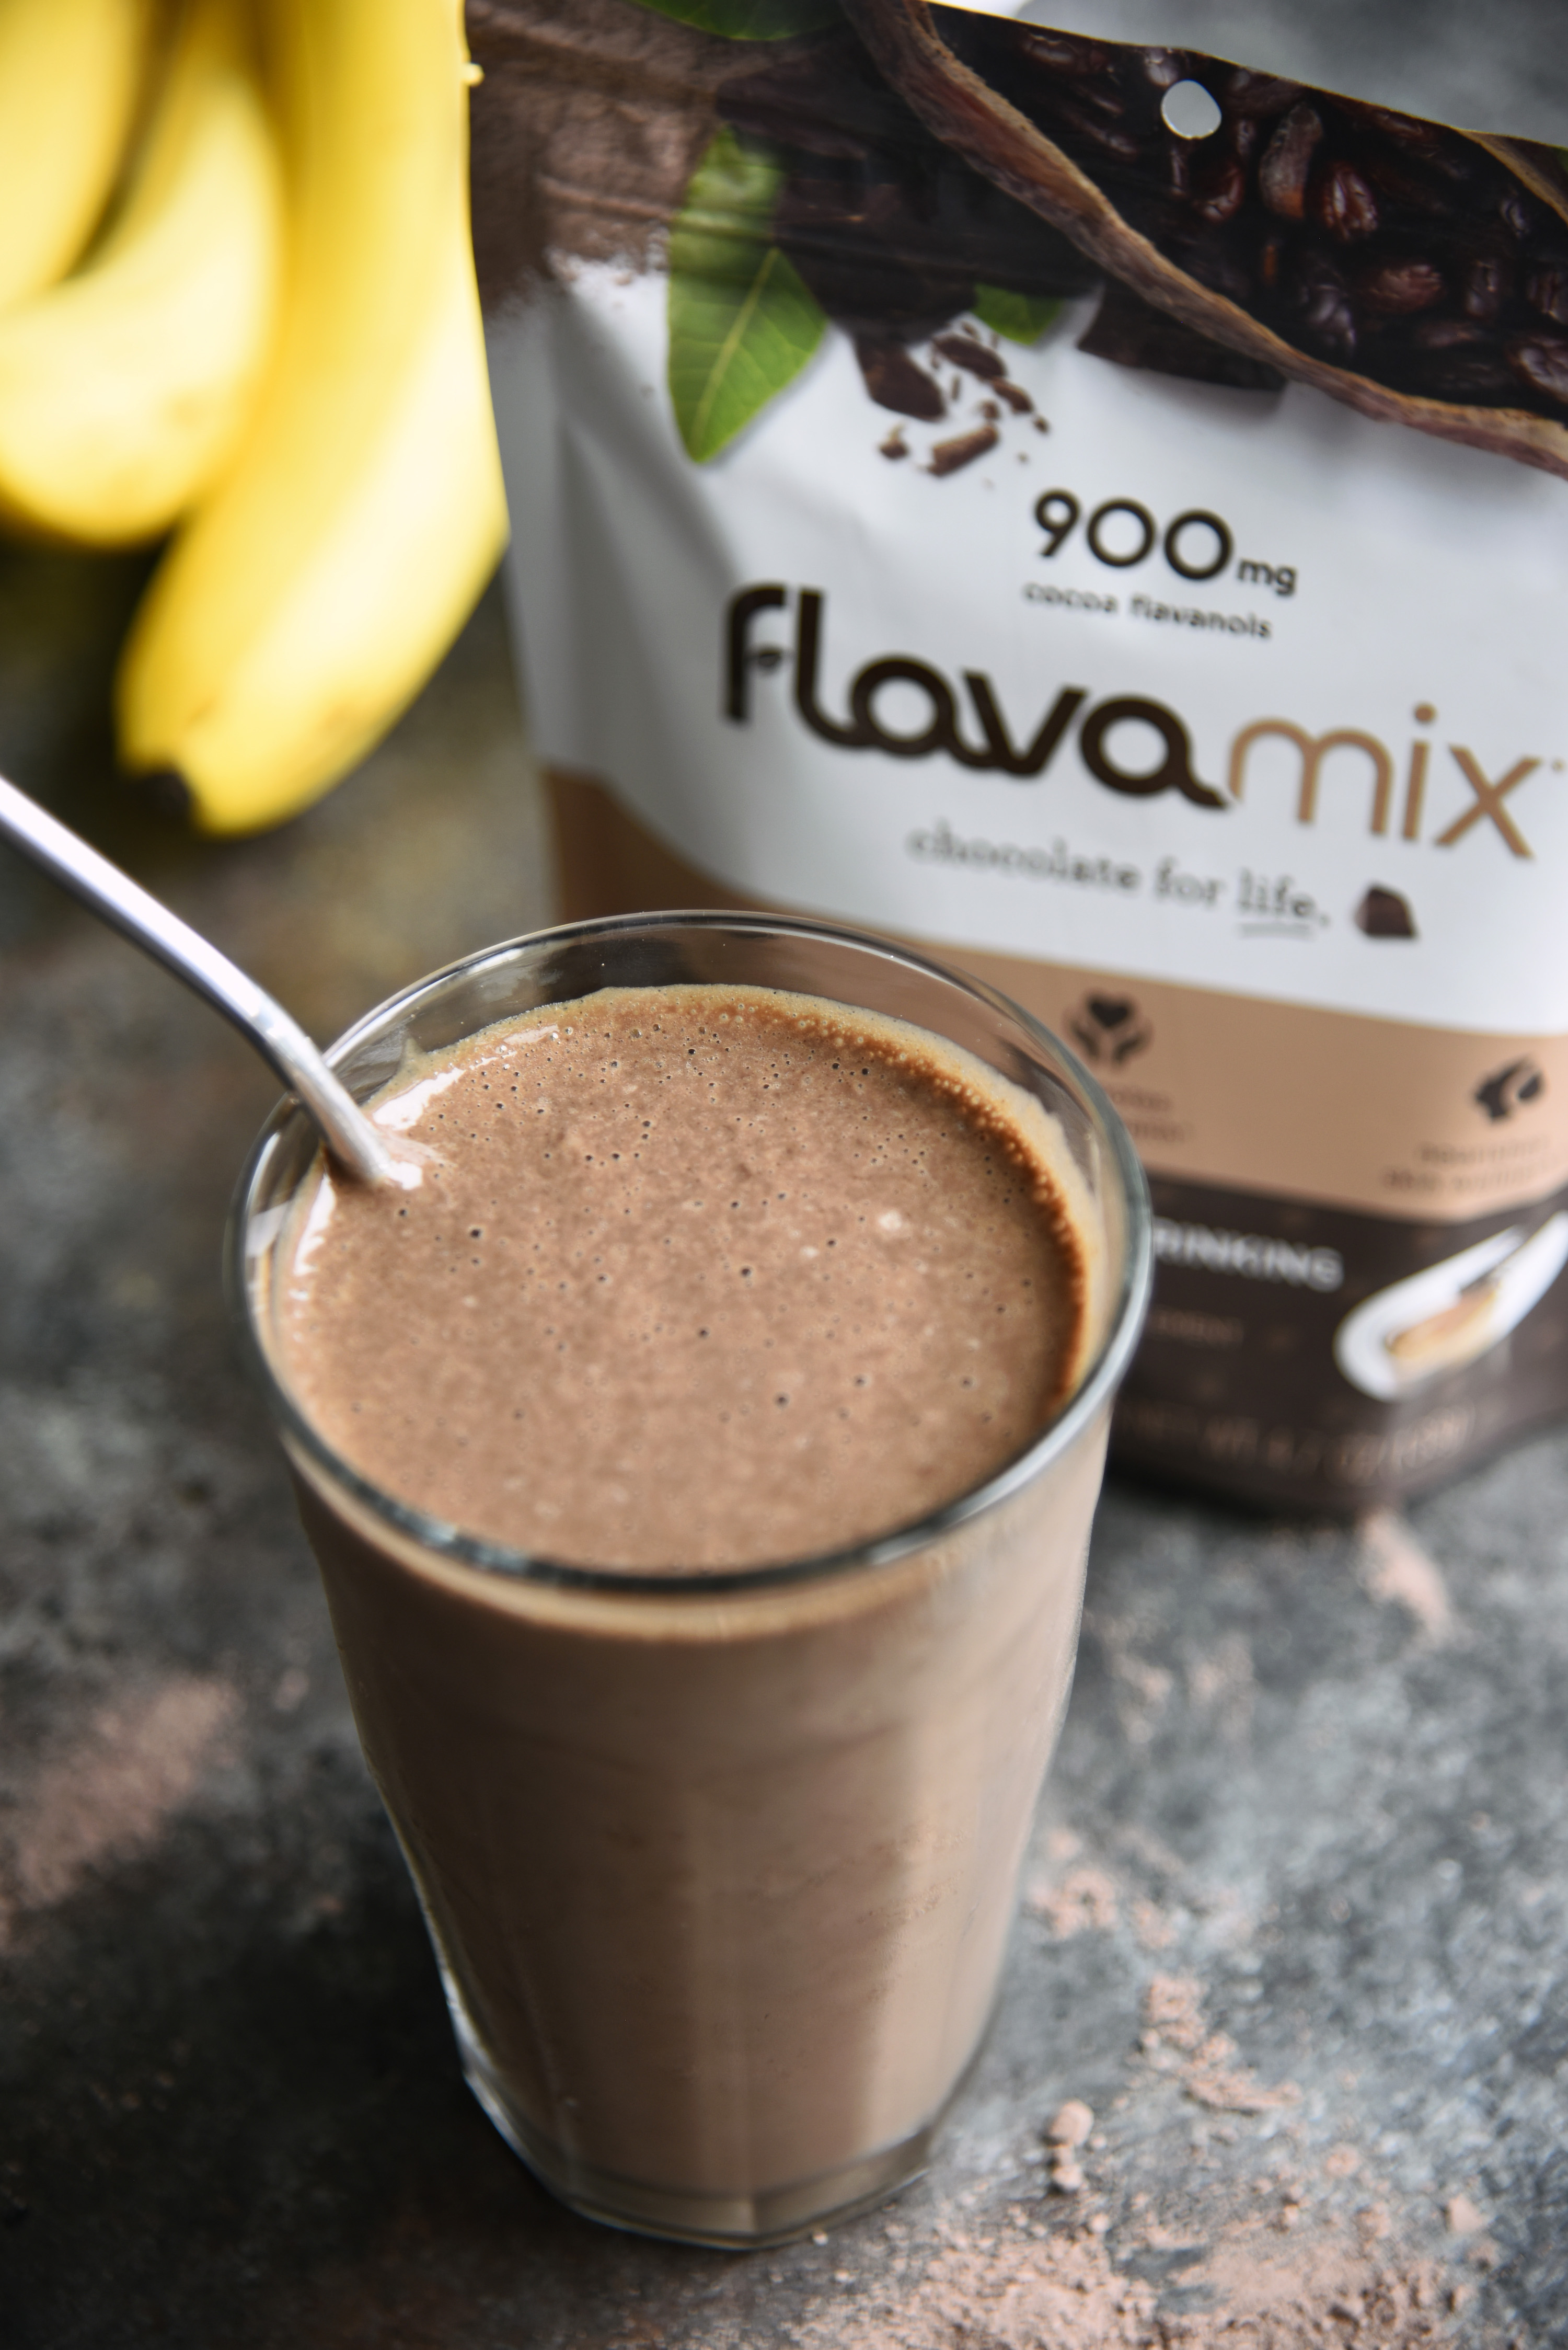 Easy Chocolate Protein Smoothie with FlavaMix Unsweetened Drinking Chocolate and 900mg Cocoa Flavanols